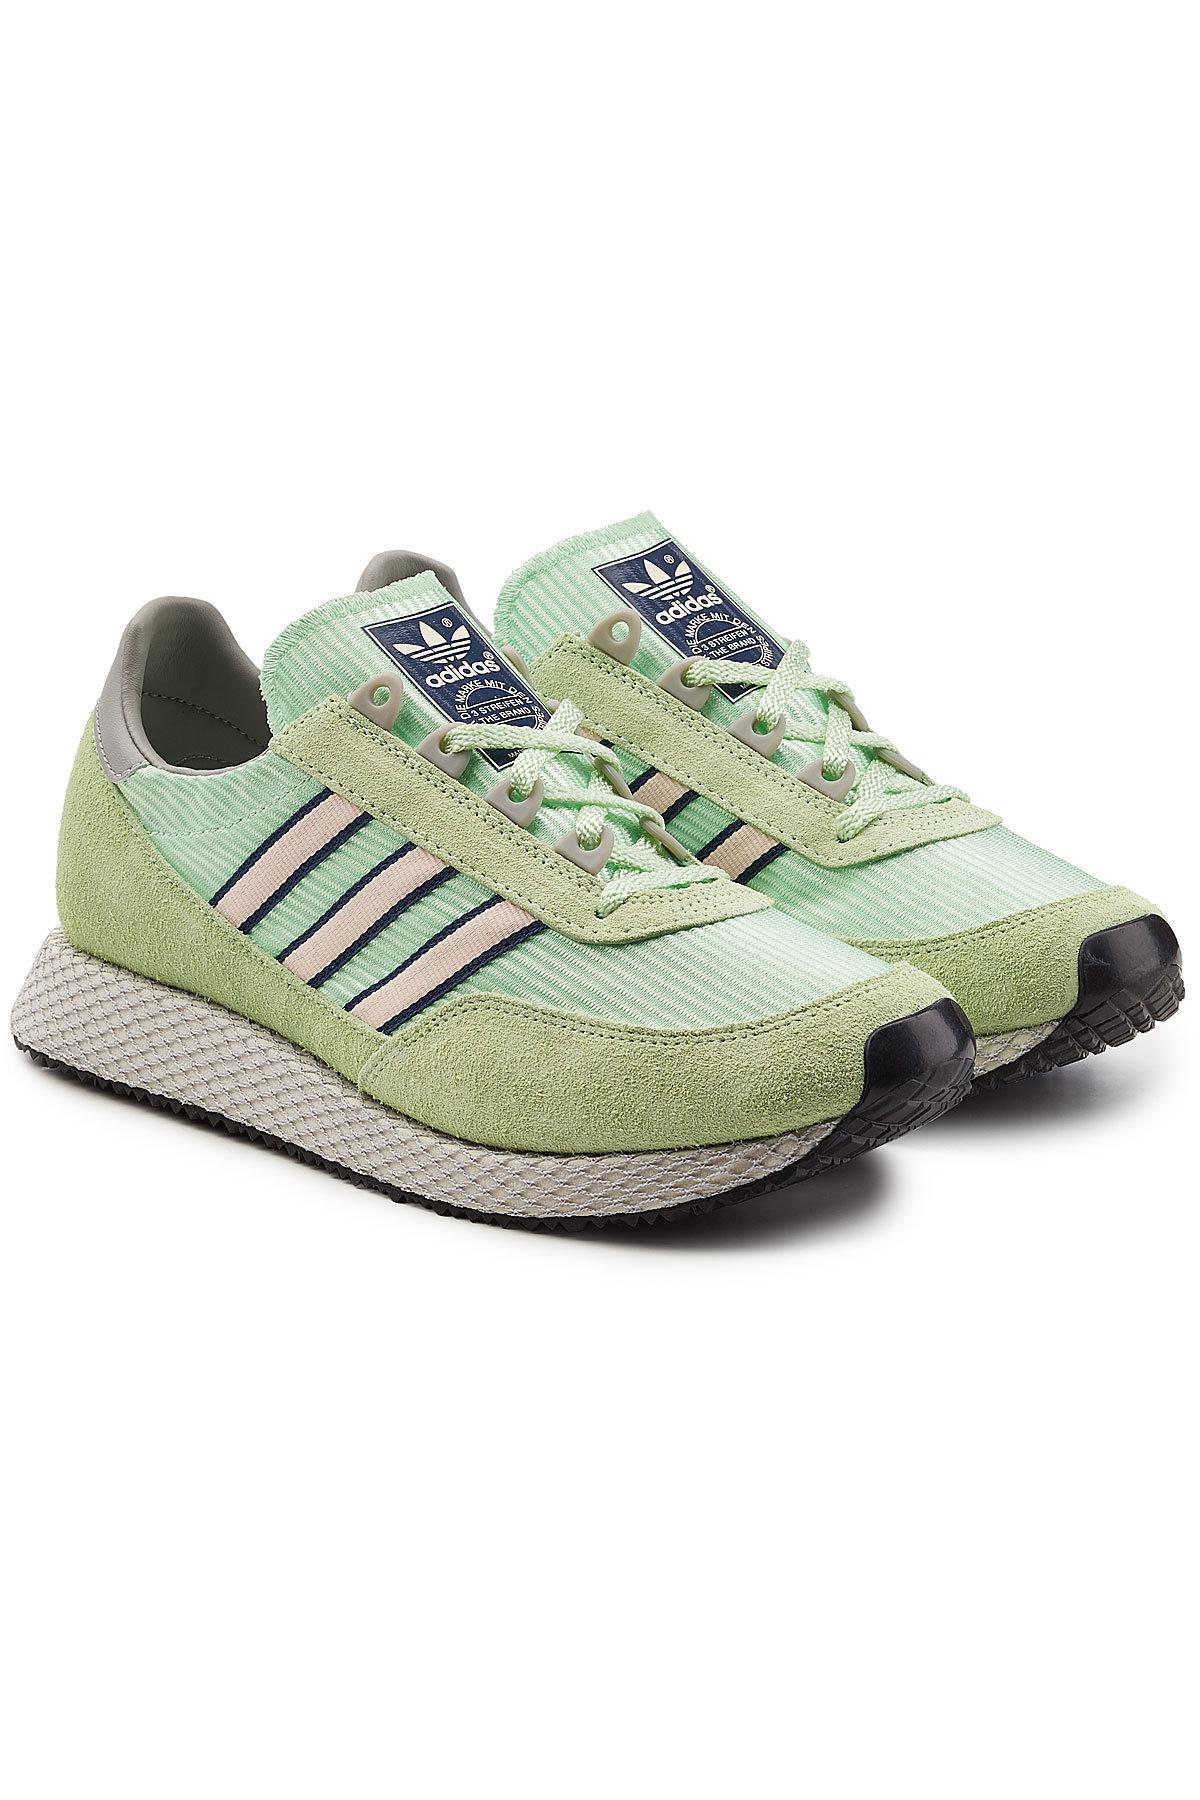 quality design a16d6 33753 ... Brown Off White Clear Granite Size fast delivery b9074 2fa29 adidas  Originals. Mens Glenbuck Spzl Trainers .. ...